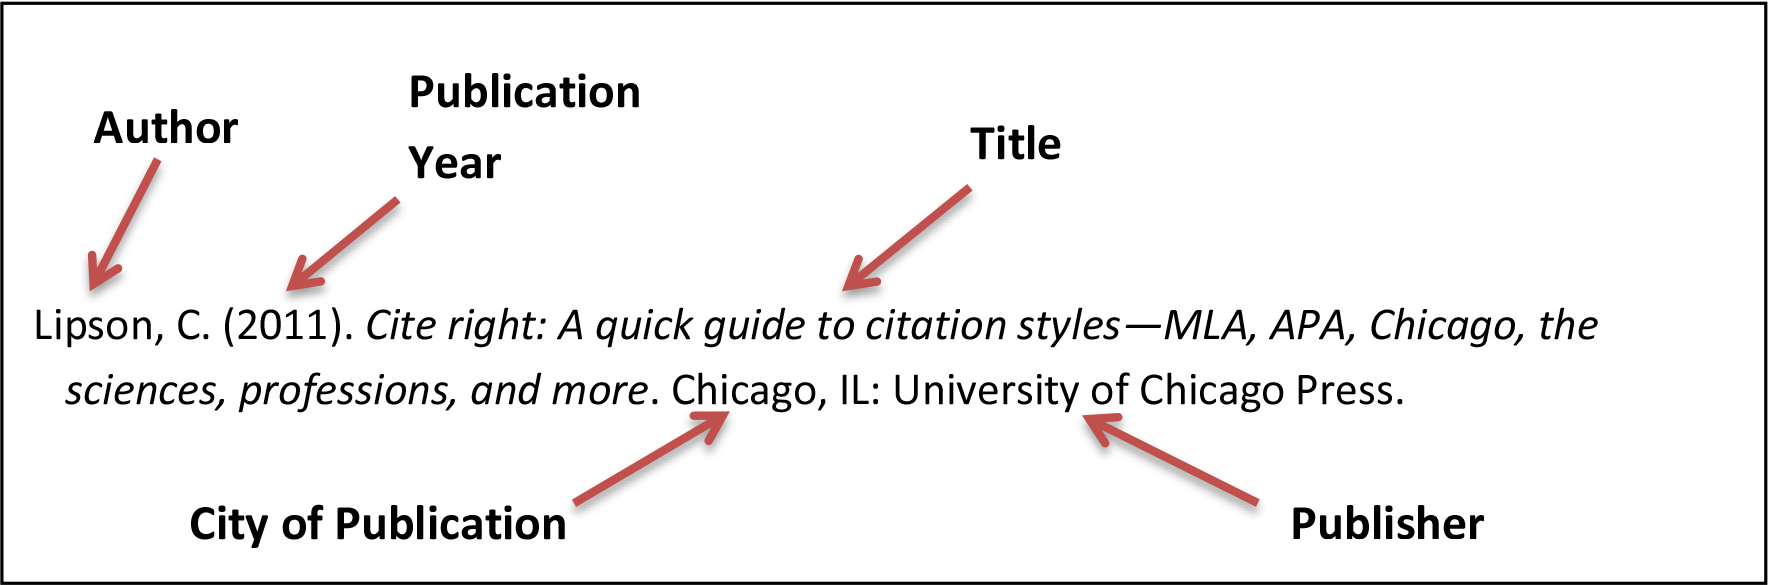 apa format for citing a book